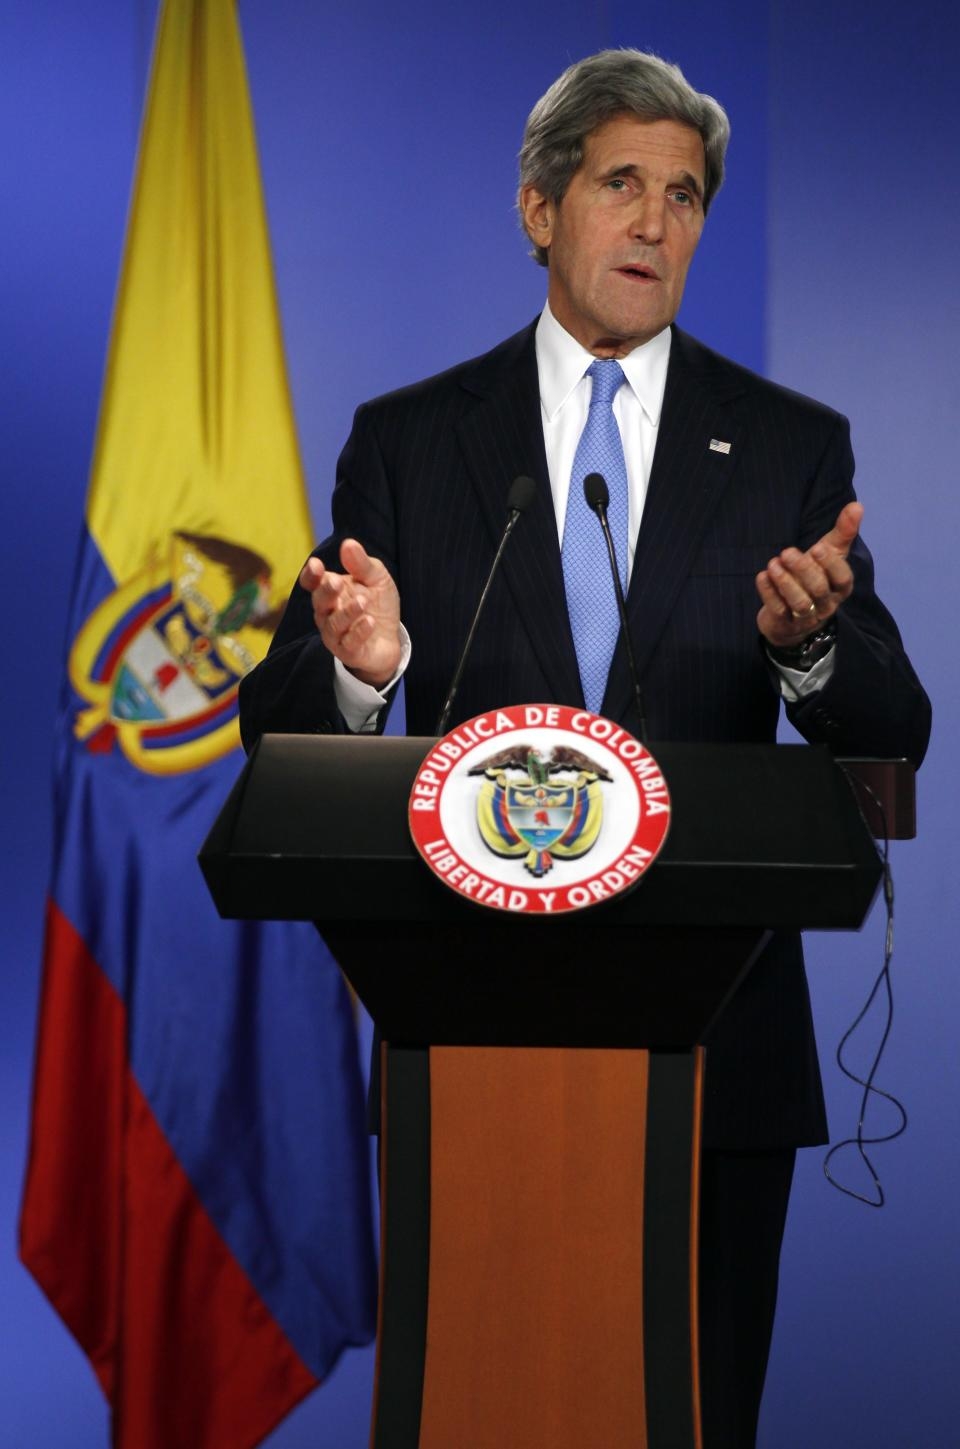 U.S. Secretary of State John Kerry speaks during a joint news conference with Colombia's Foreign Minister Maria Angela Holguin, unseen, at the Presidential Palace in Bogota, Colombia, Monday, Aug. 12, 2013. Kerry is on a one-day official visit to Colombia. (AP Photo/Fernando Vergara)